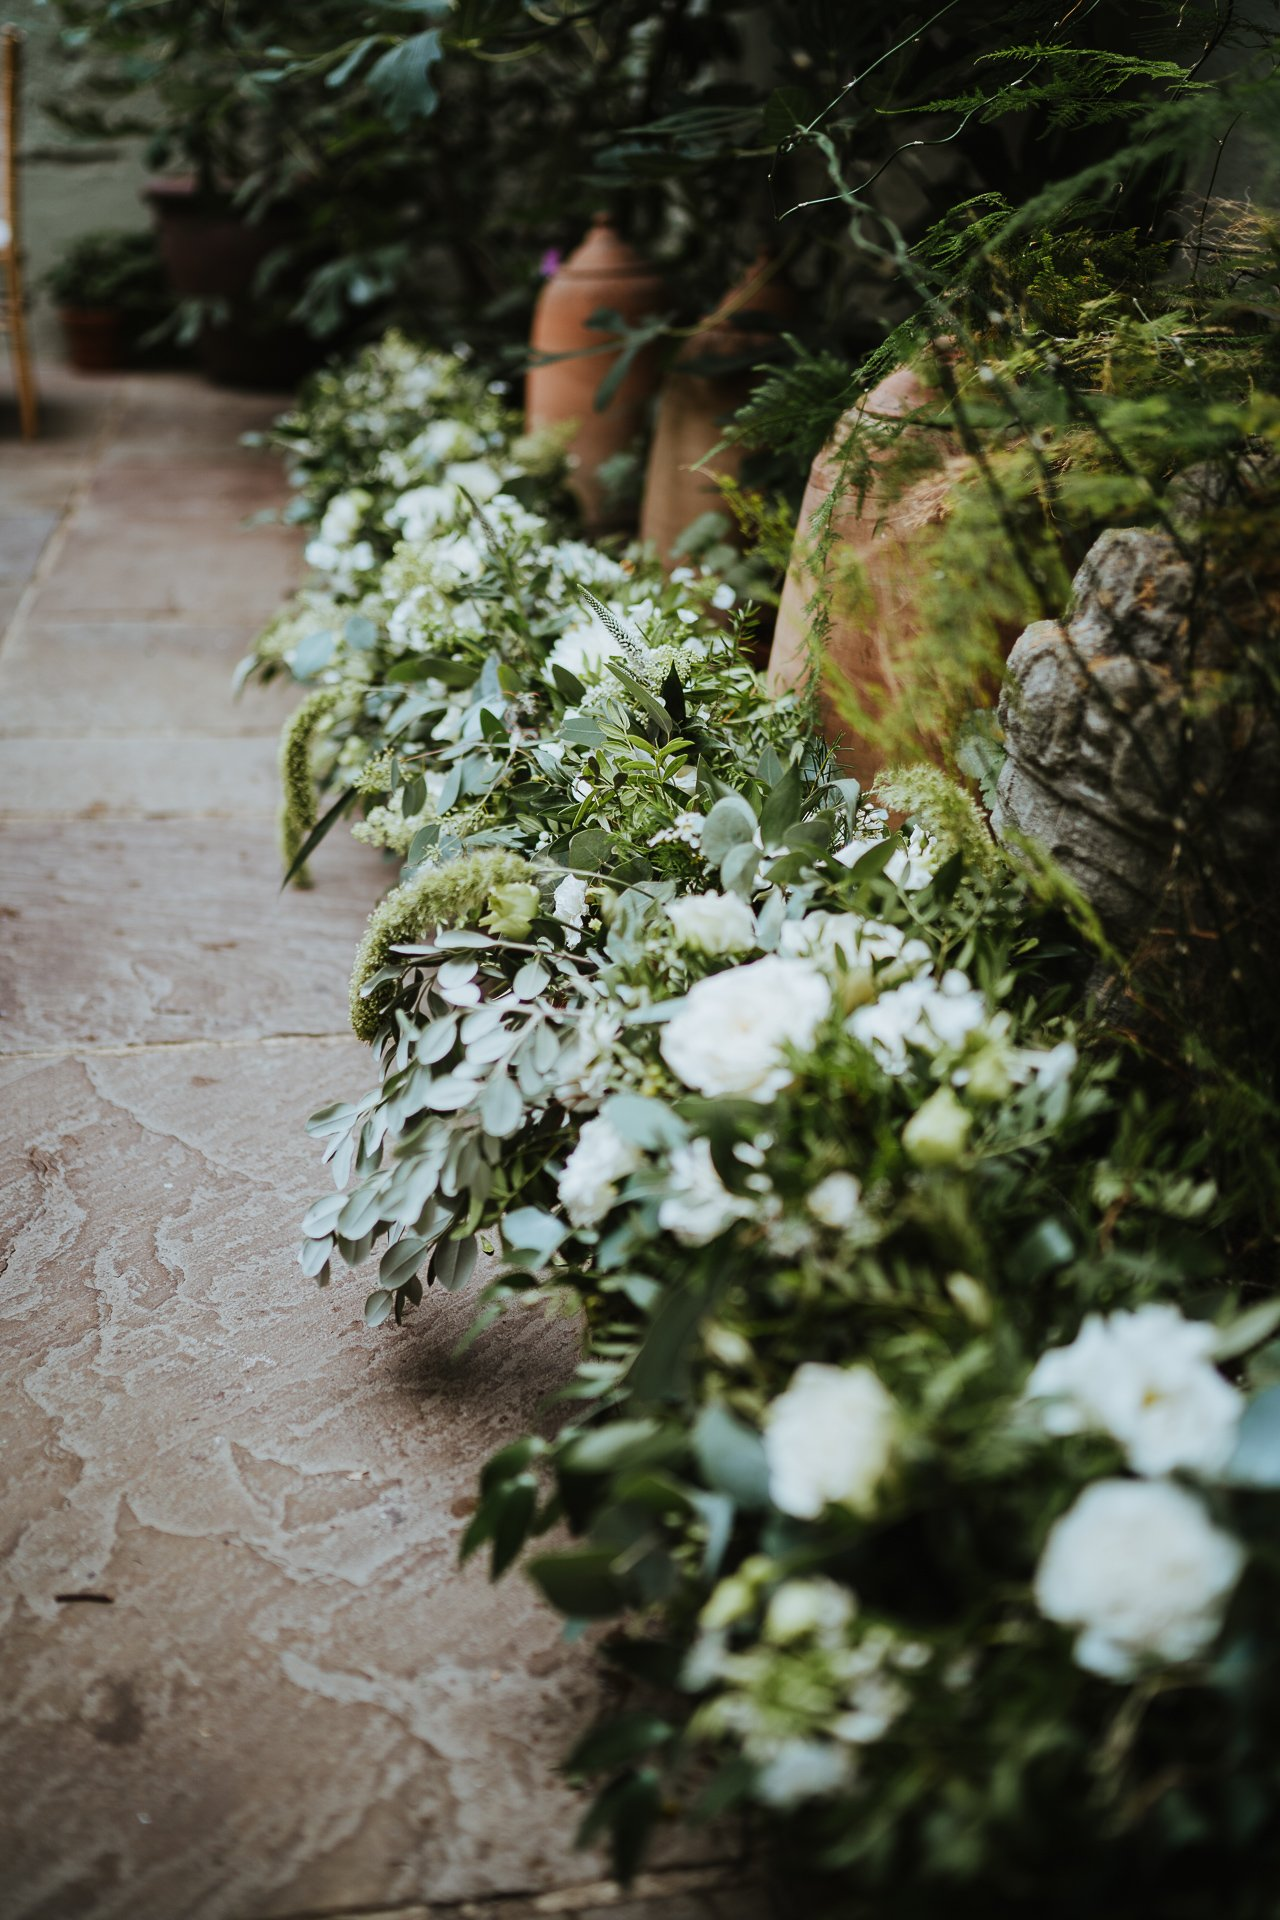 Beautiful white flowers with green foliage to decorate the reception venue